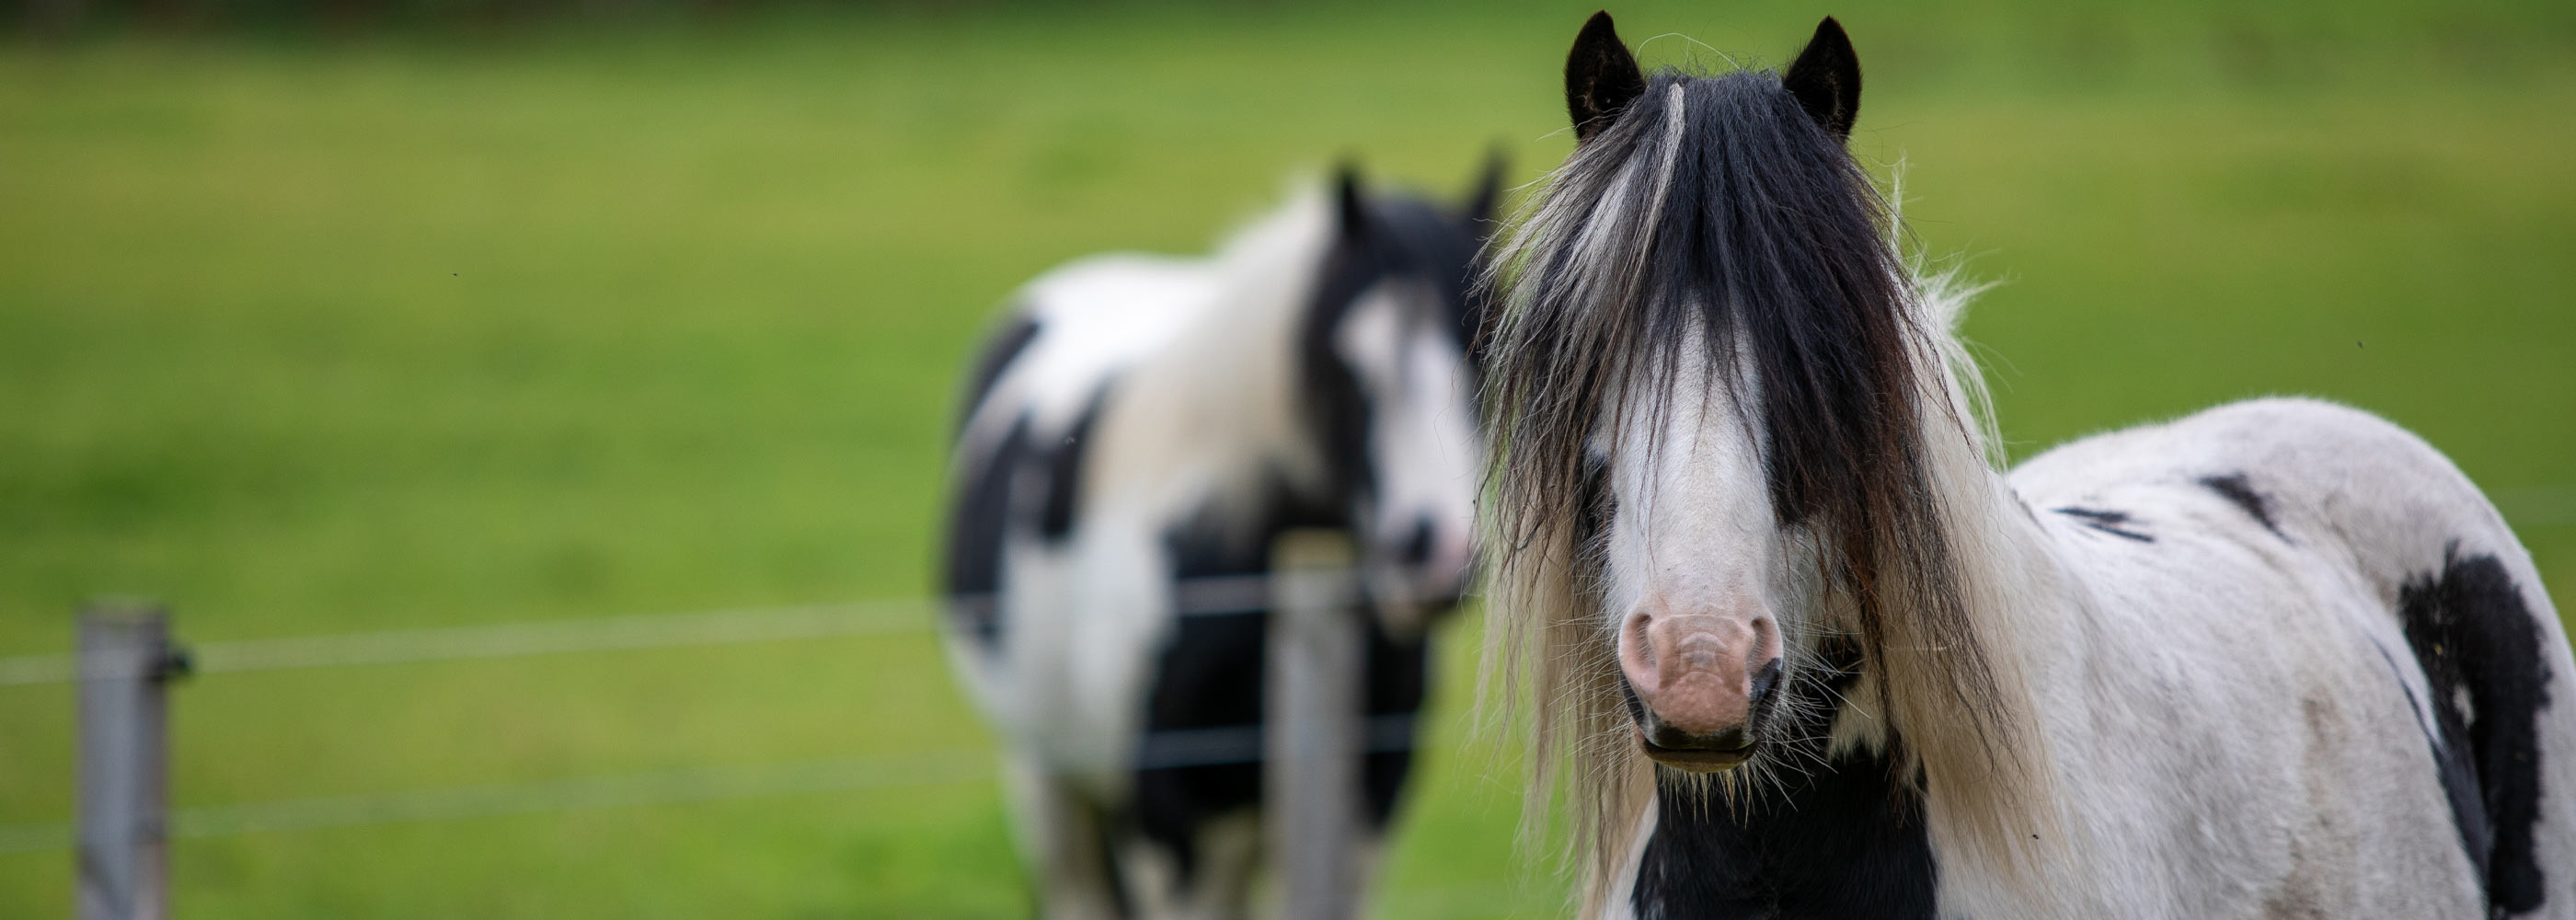 Two black and white horses ina  field of grass